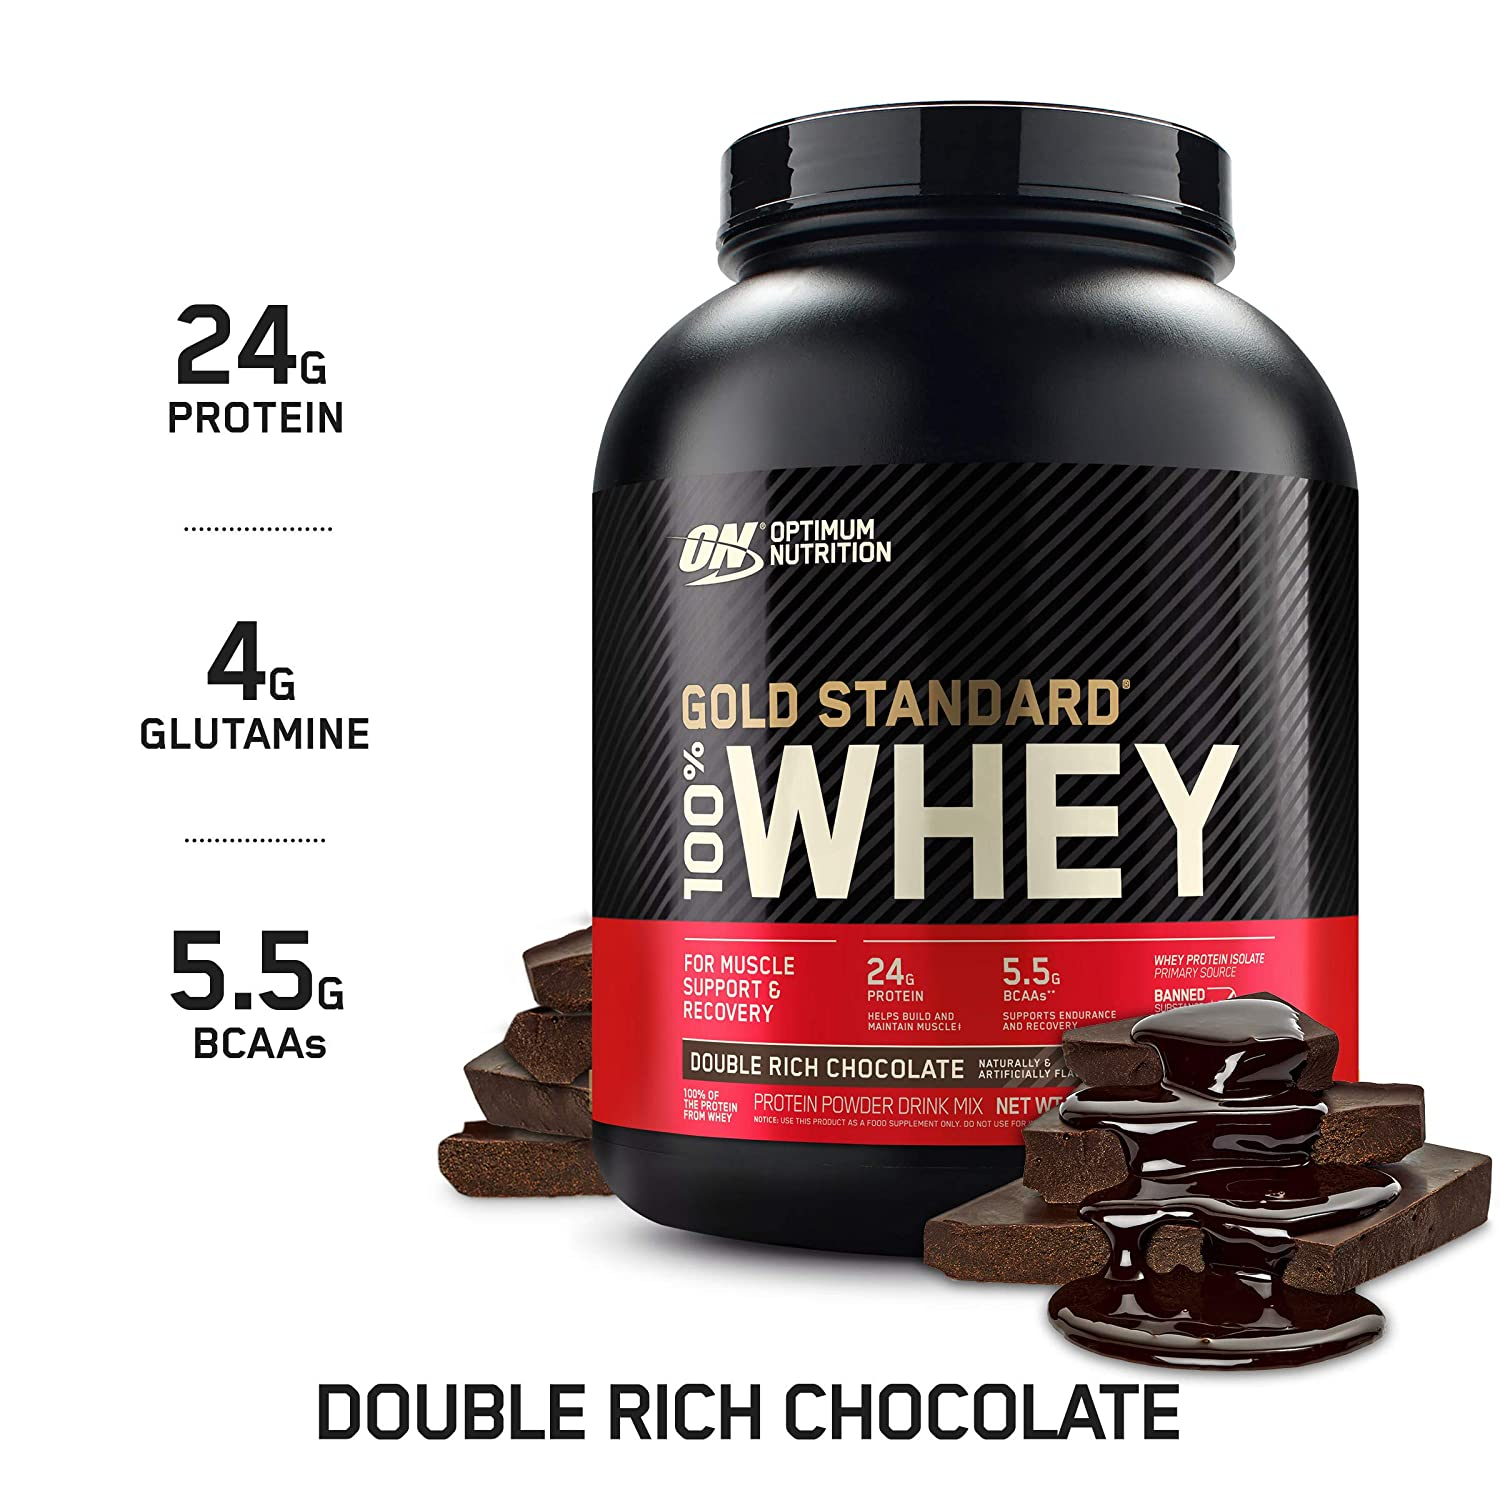 Top 5 Best Cheap Protein Powders Reviews in 2020 2